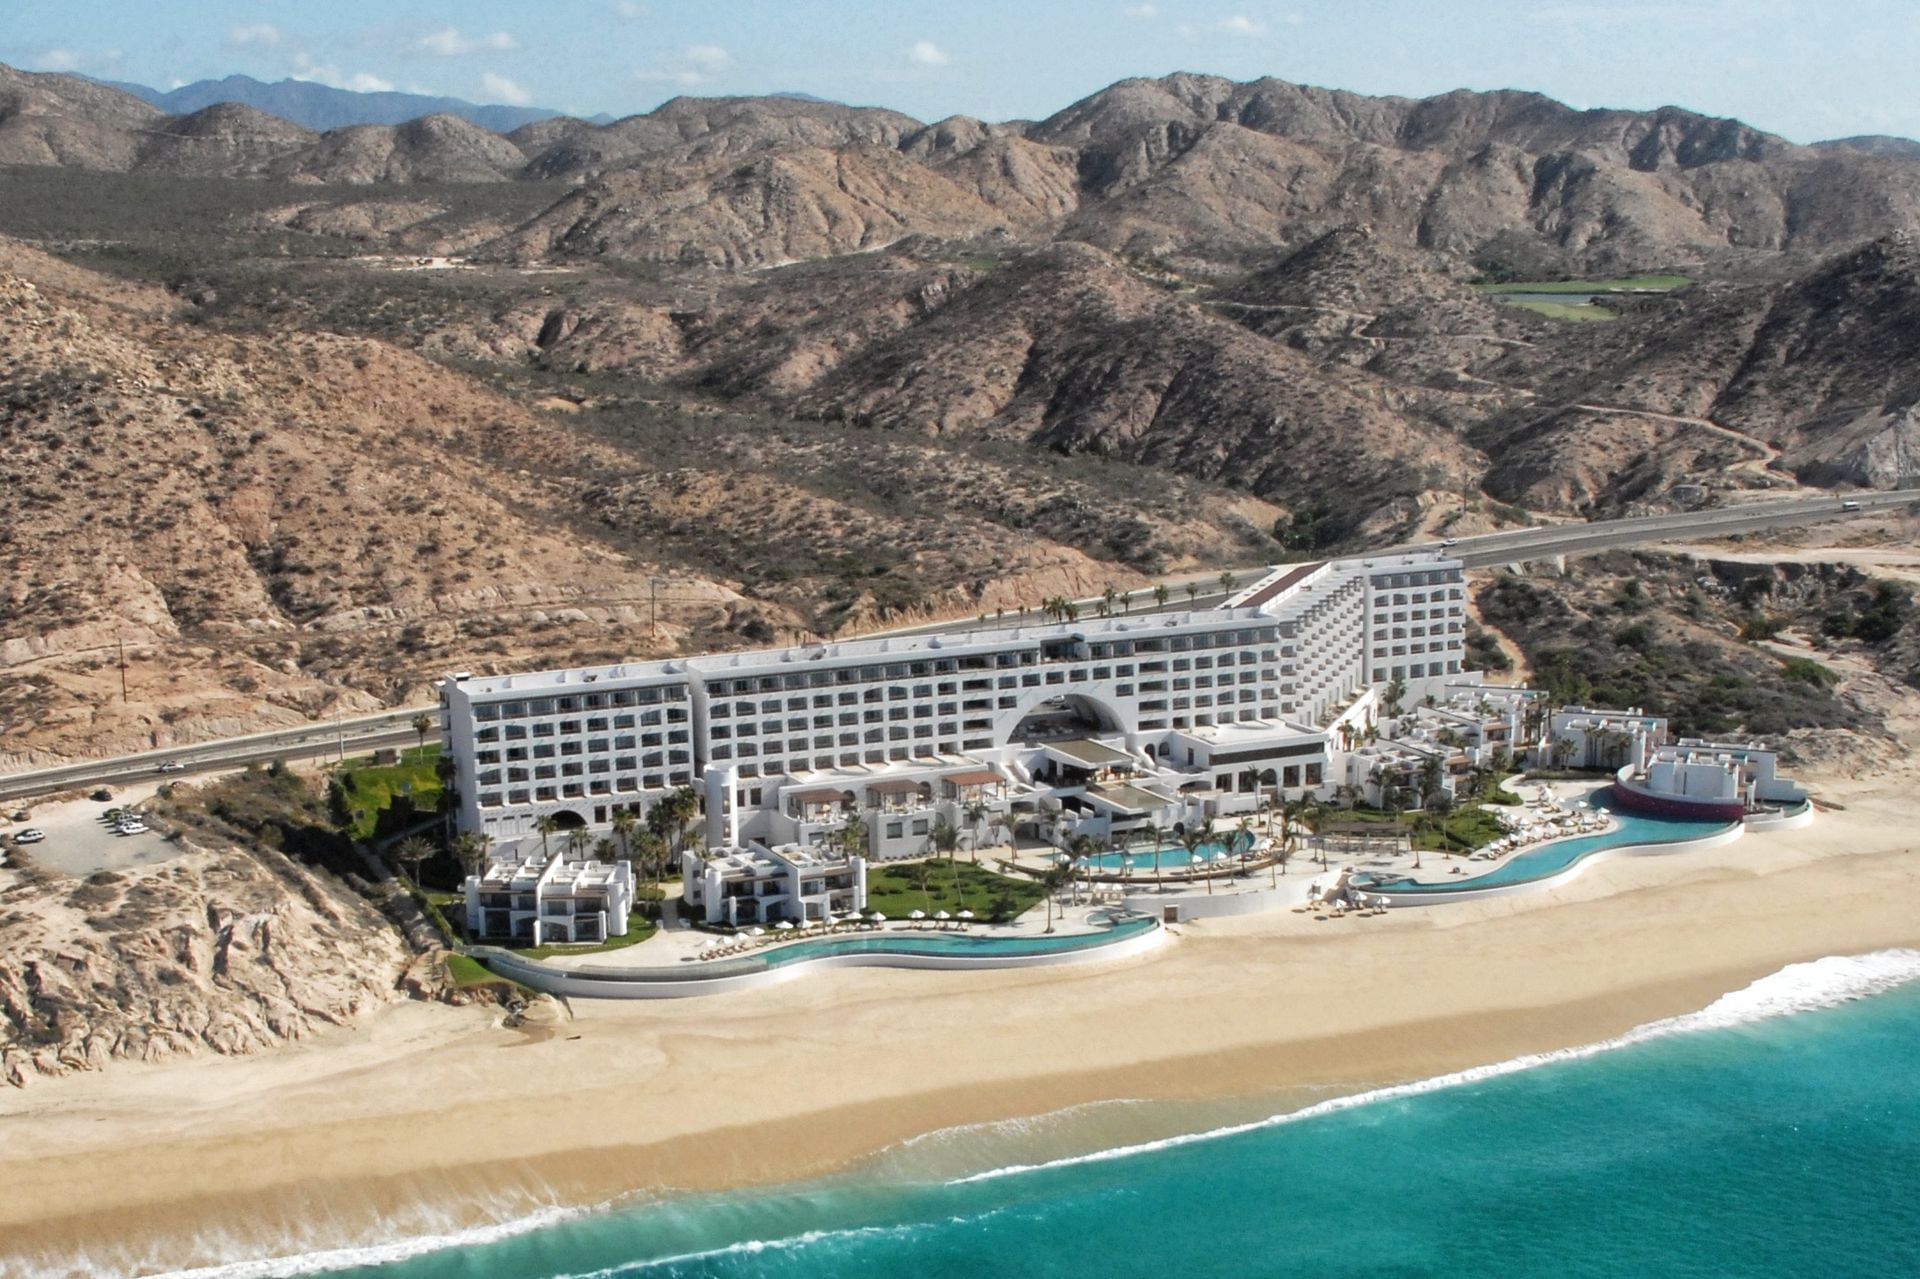 Aerial view of a beachfront resort - Marquis Los Cabos